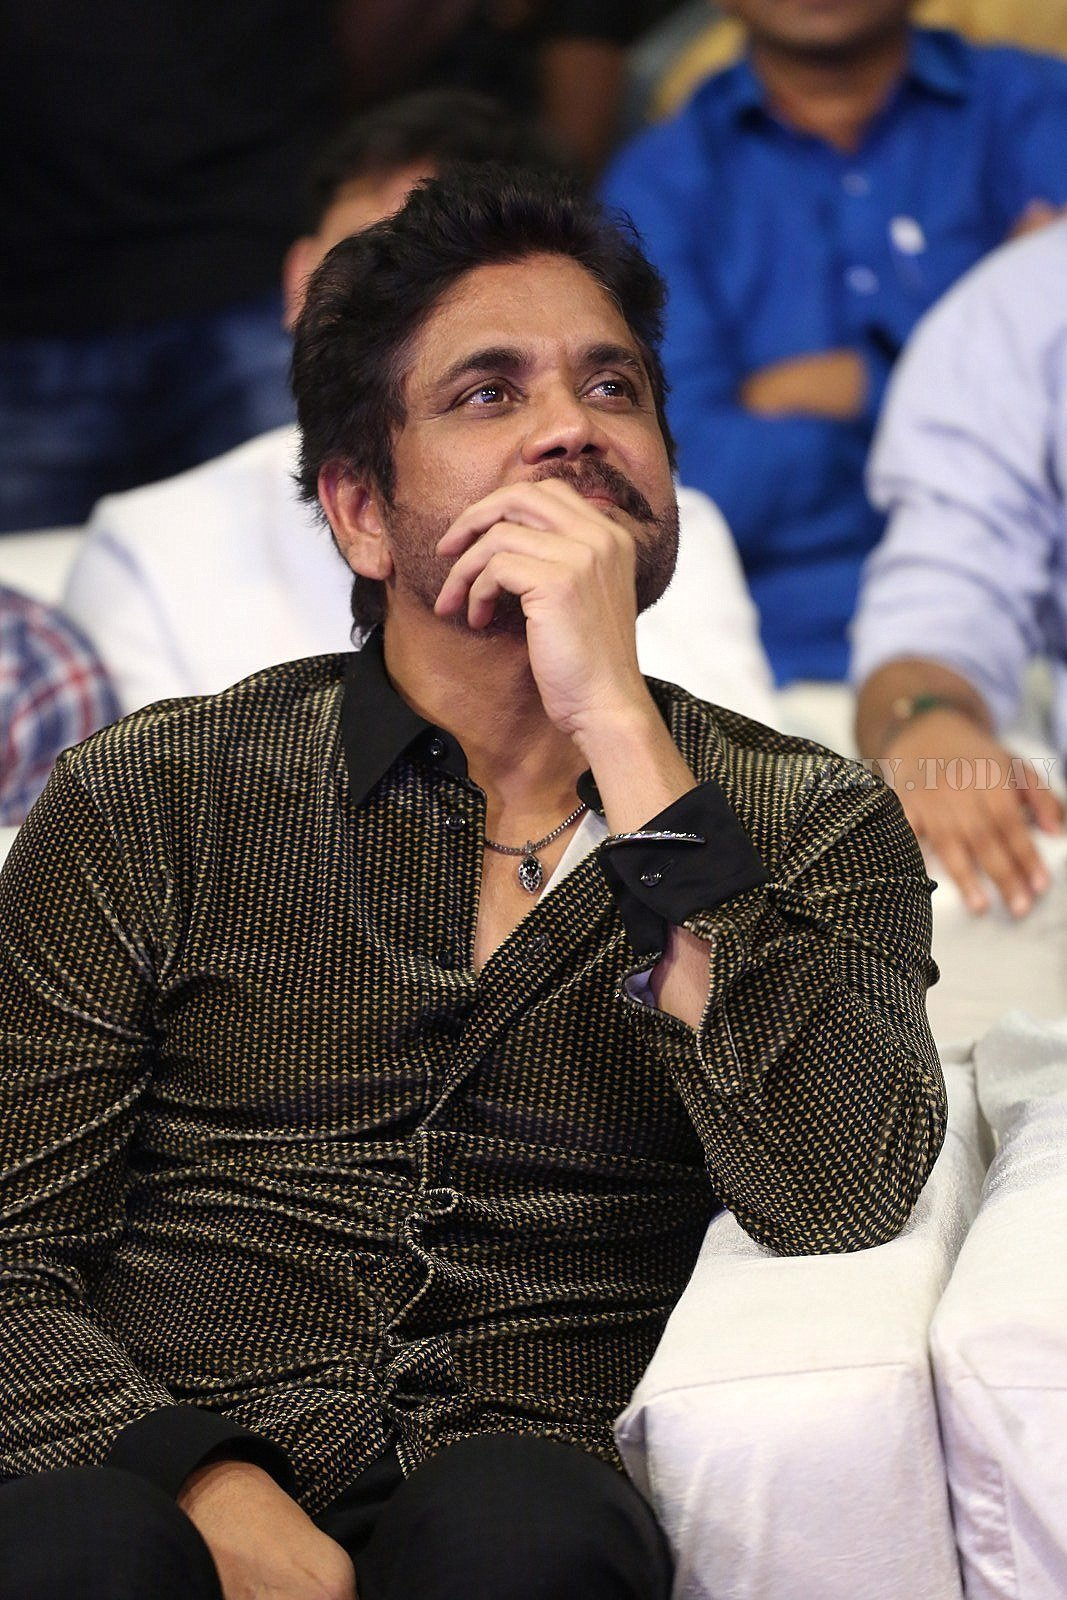 Nagarjuna Akkineni - Mr. Majnu Telugu Movie Pre Release Event Photos | Picture 1621401